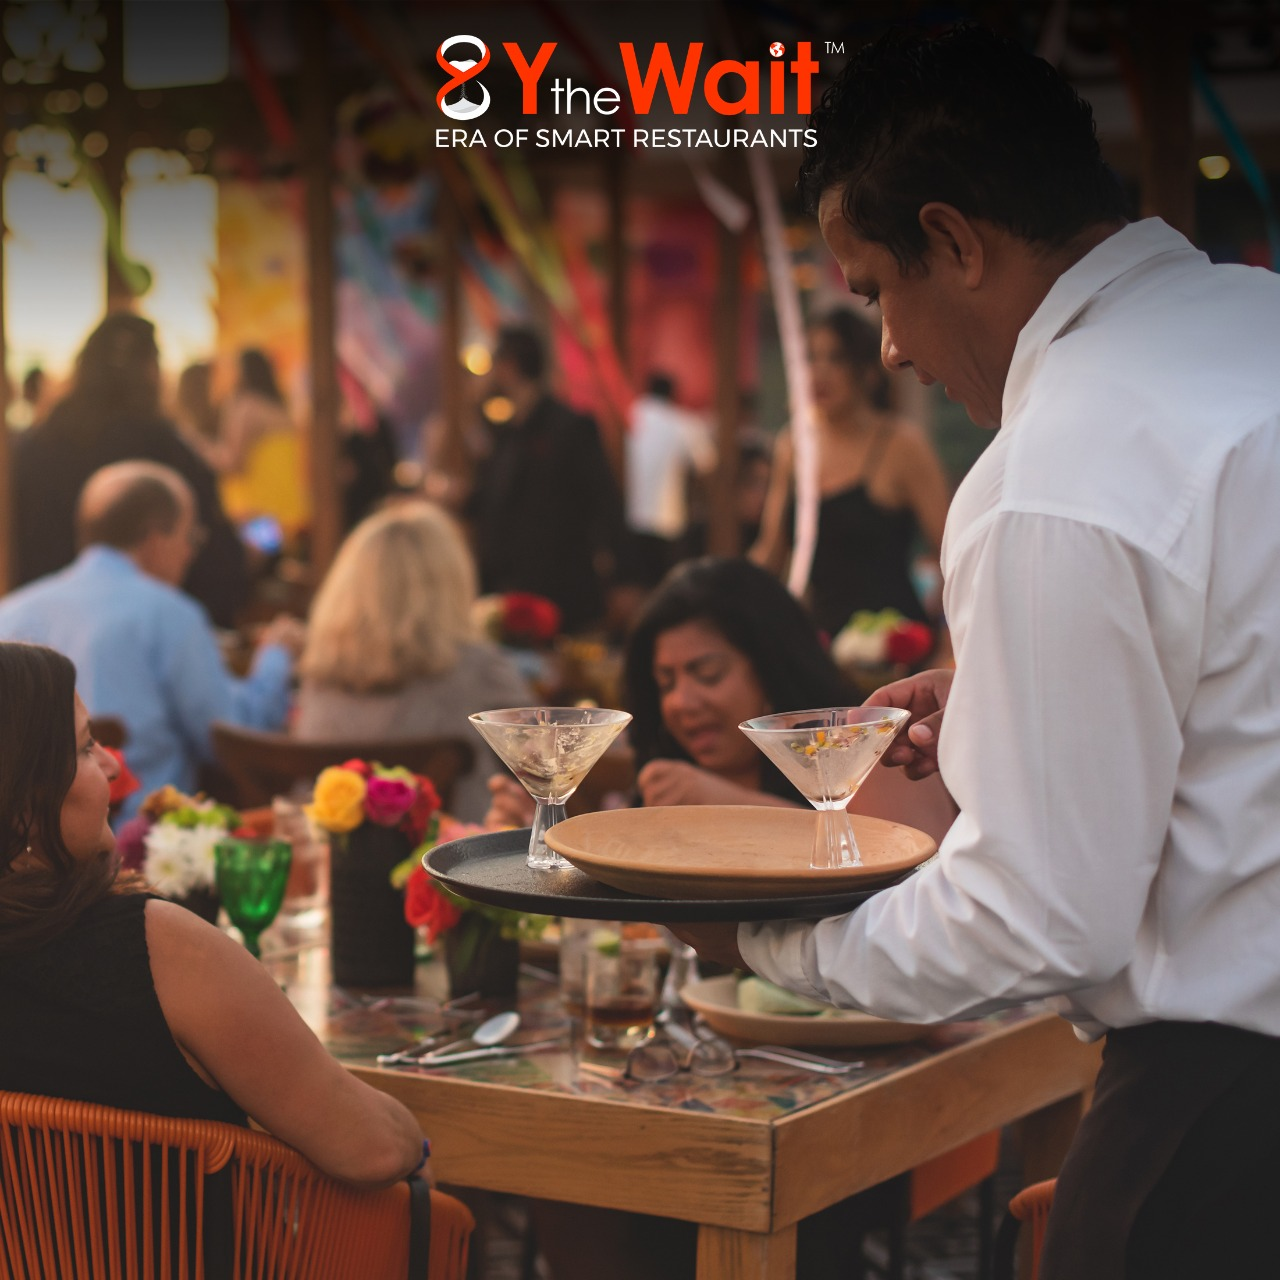 Y the Wait - Digital Waiter App - Waiter Serving